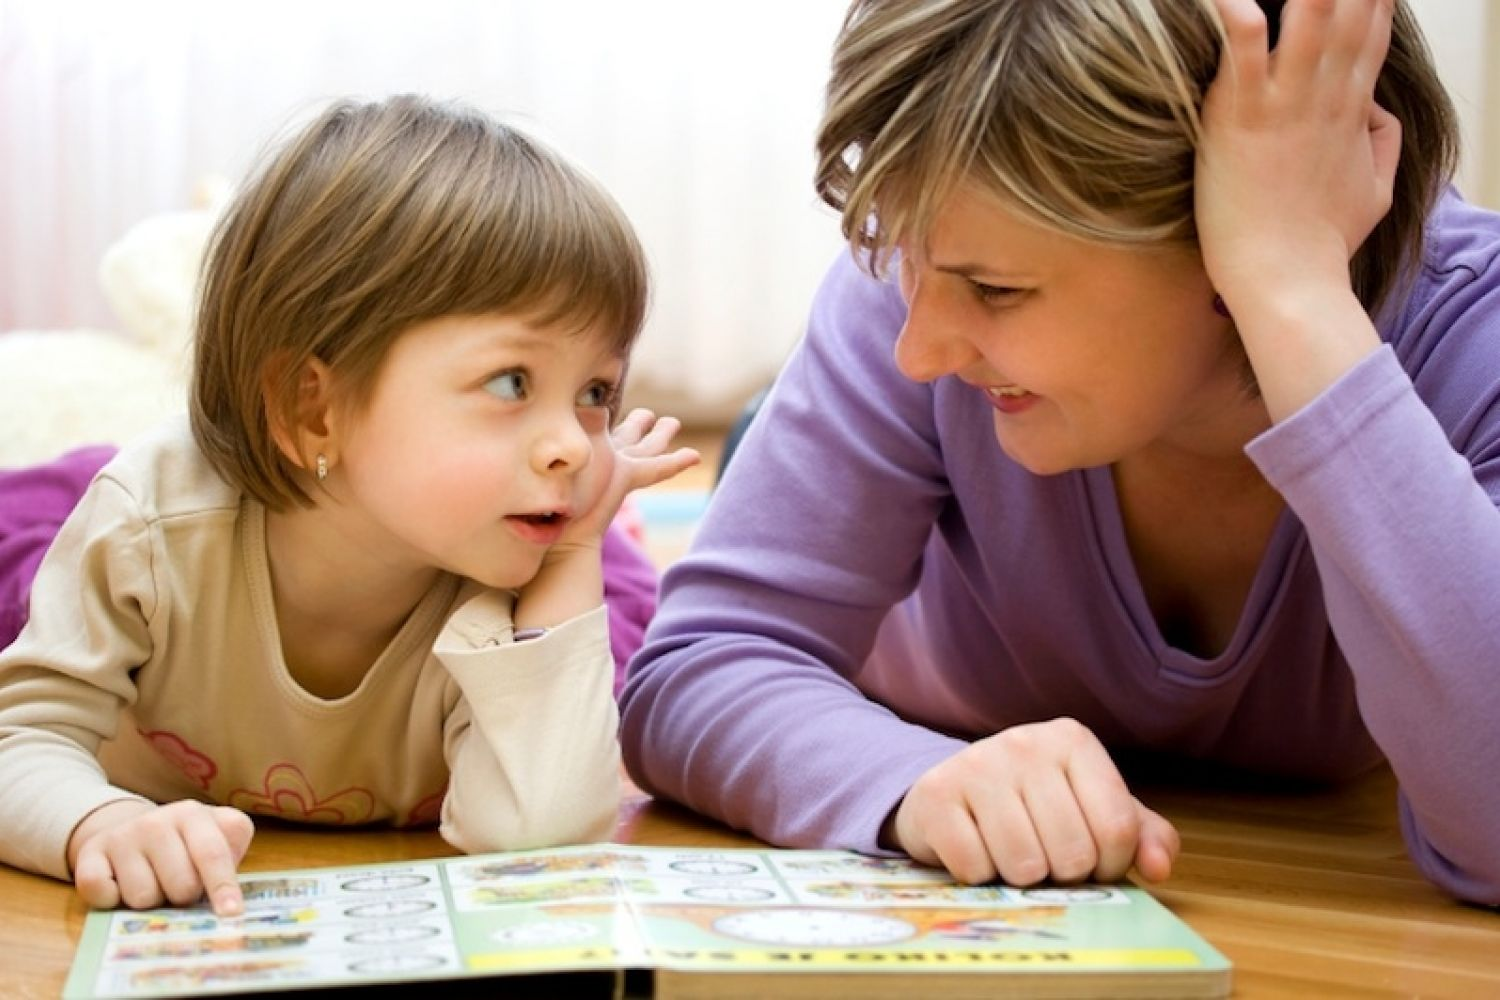 5 Reasons Why Parents of Children with ADHD Need to Become Proactive, Well-Informed Advocates